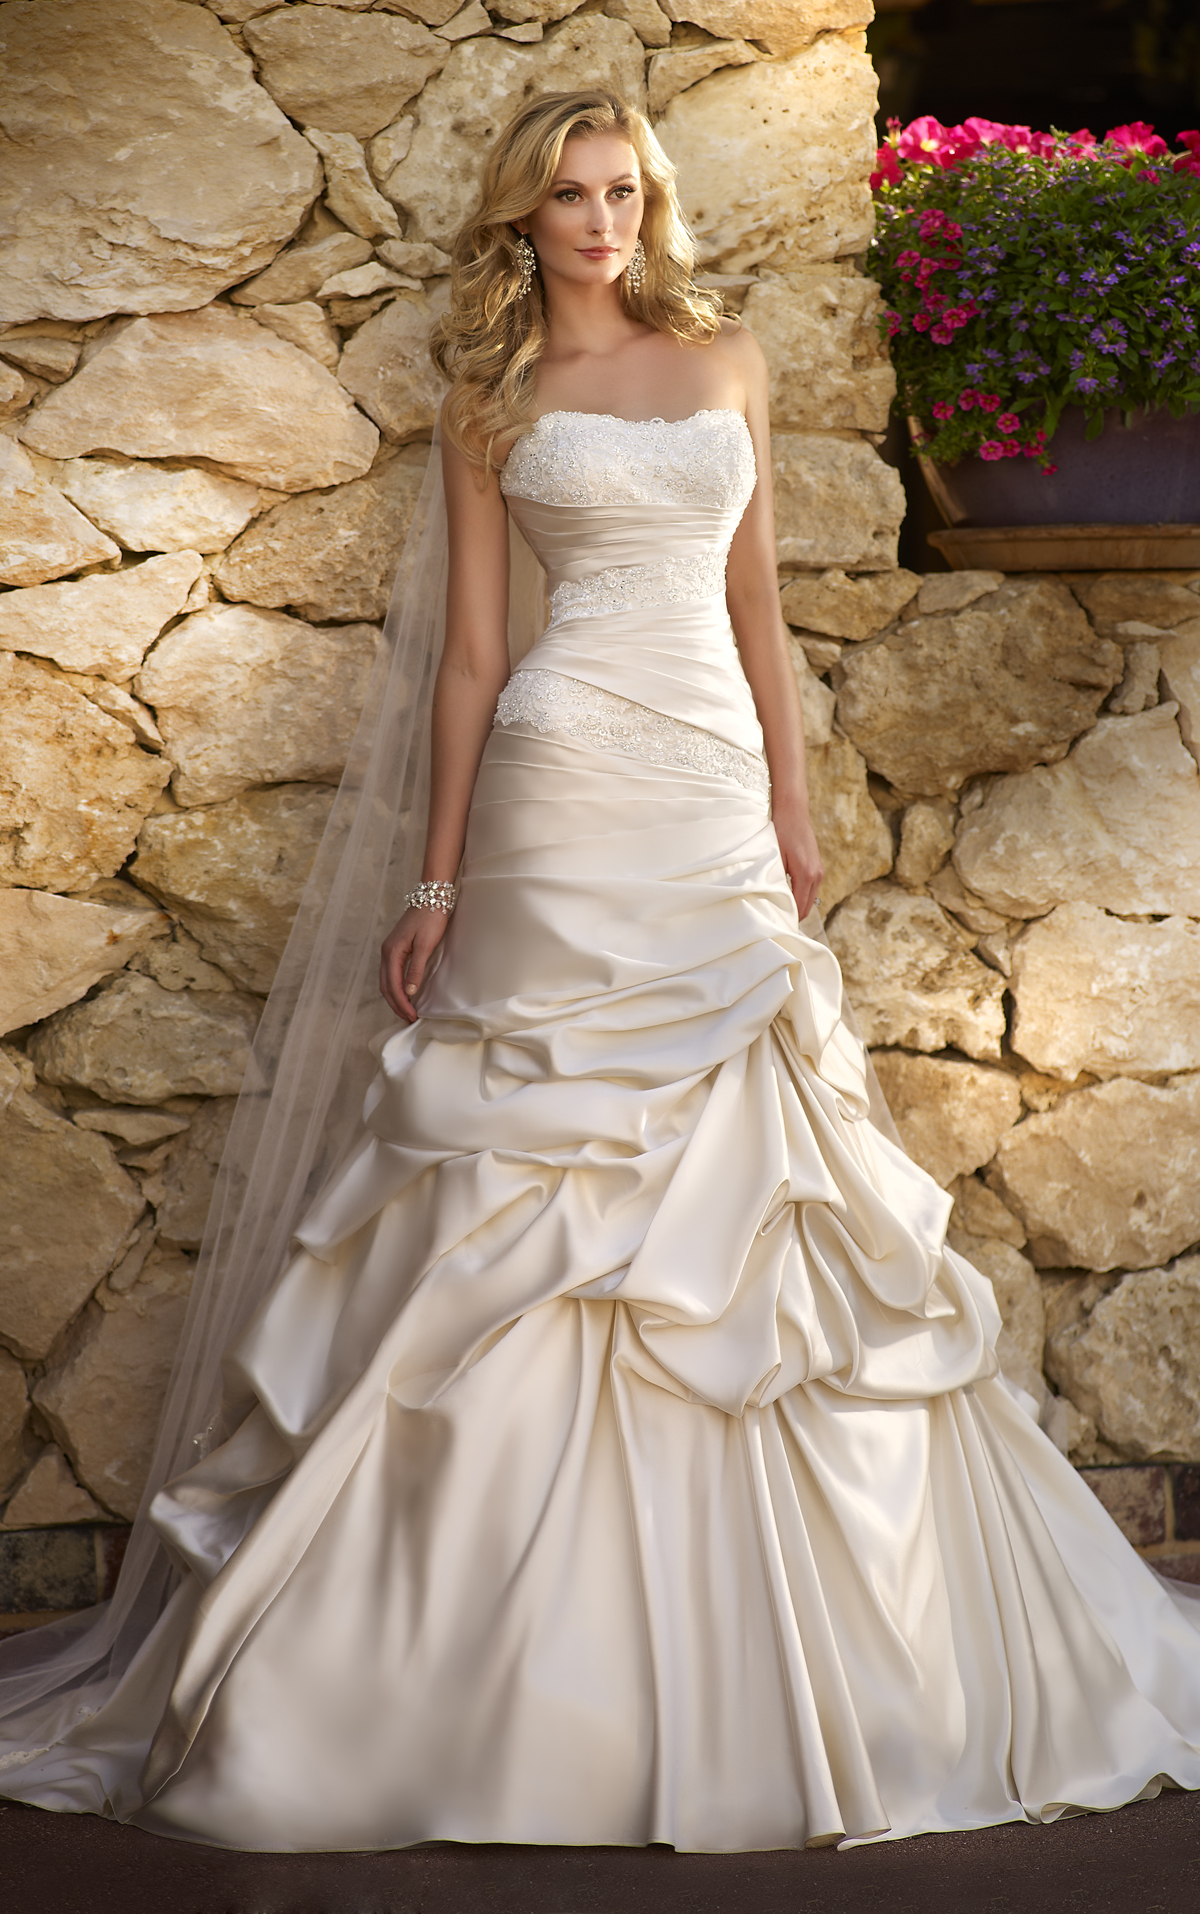 The Best Gowns From Most In Demand Wedding Dress Designers